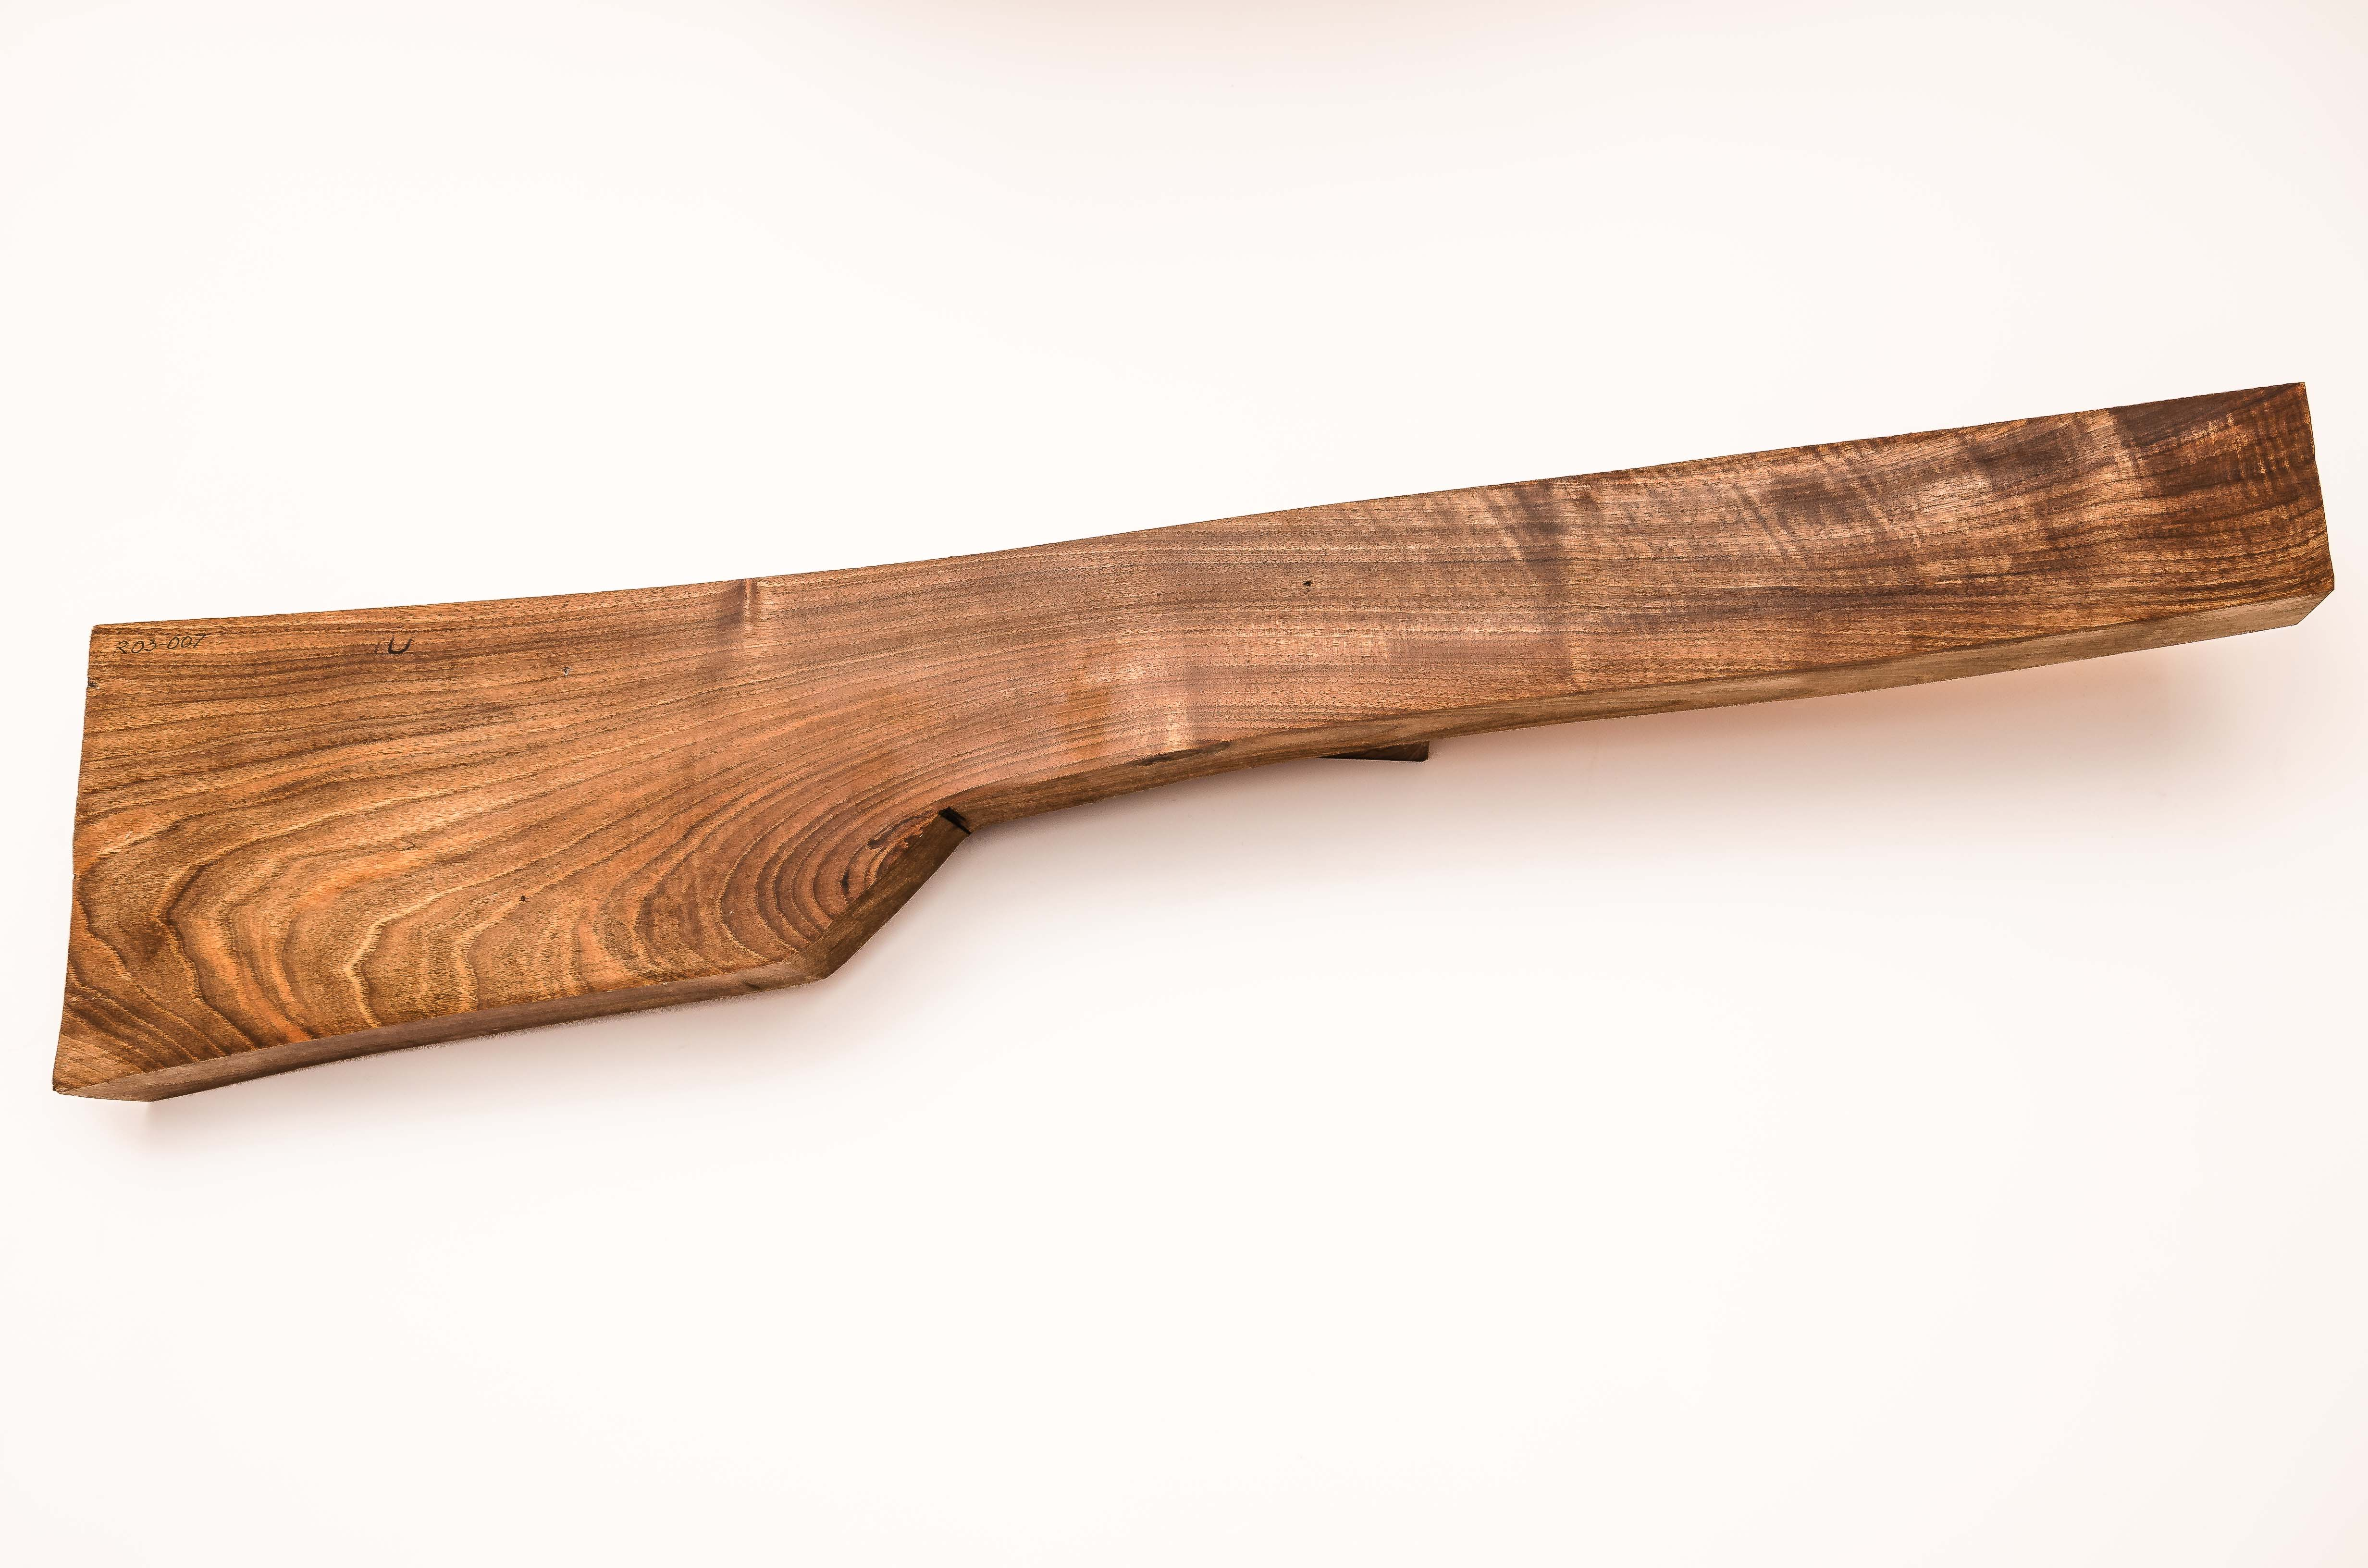 walnut_stock_blanks_for_guns_and_rifles (6 of 9)